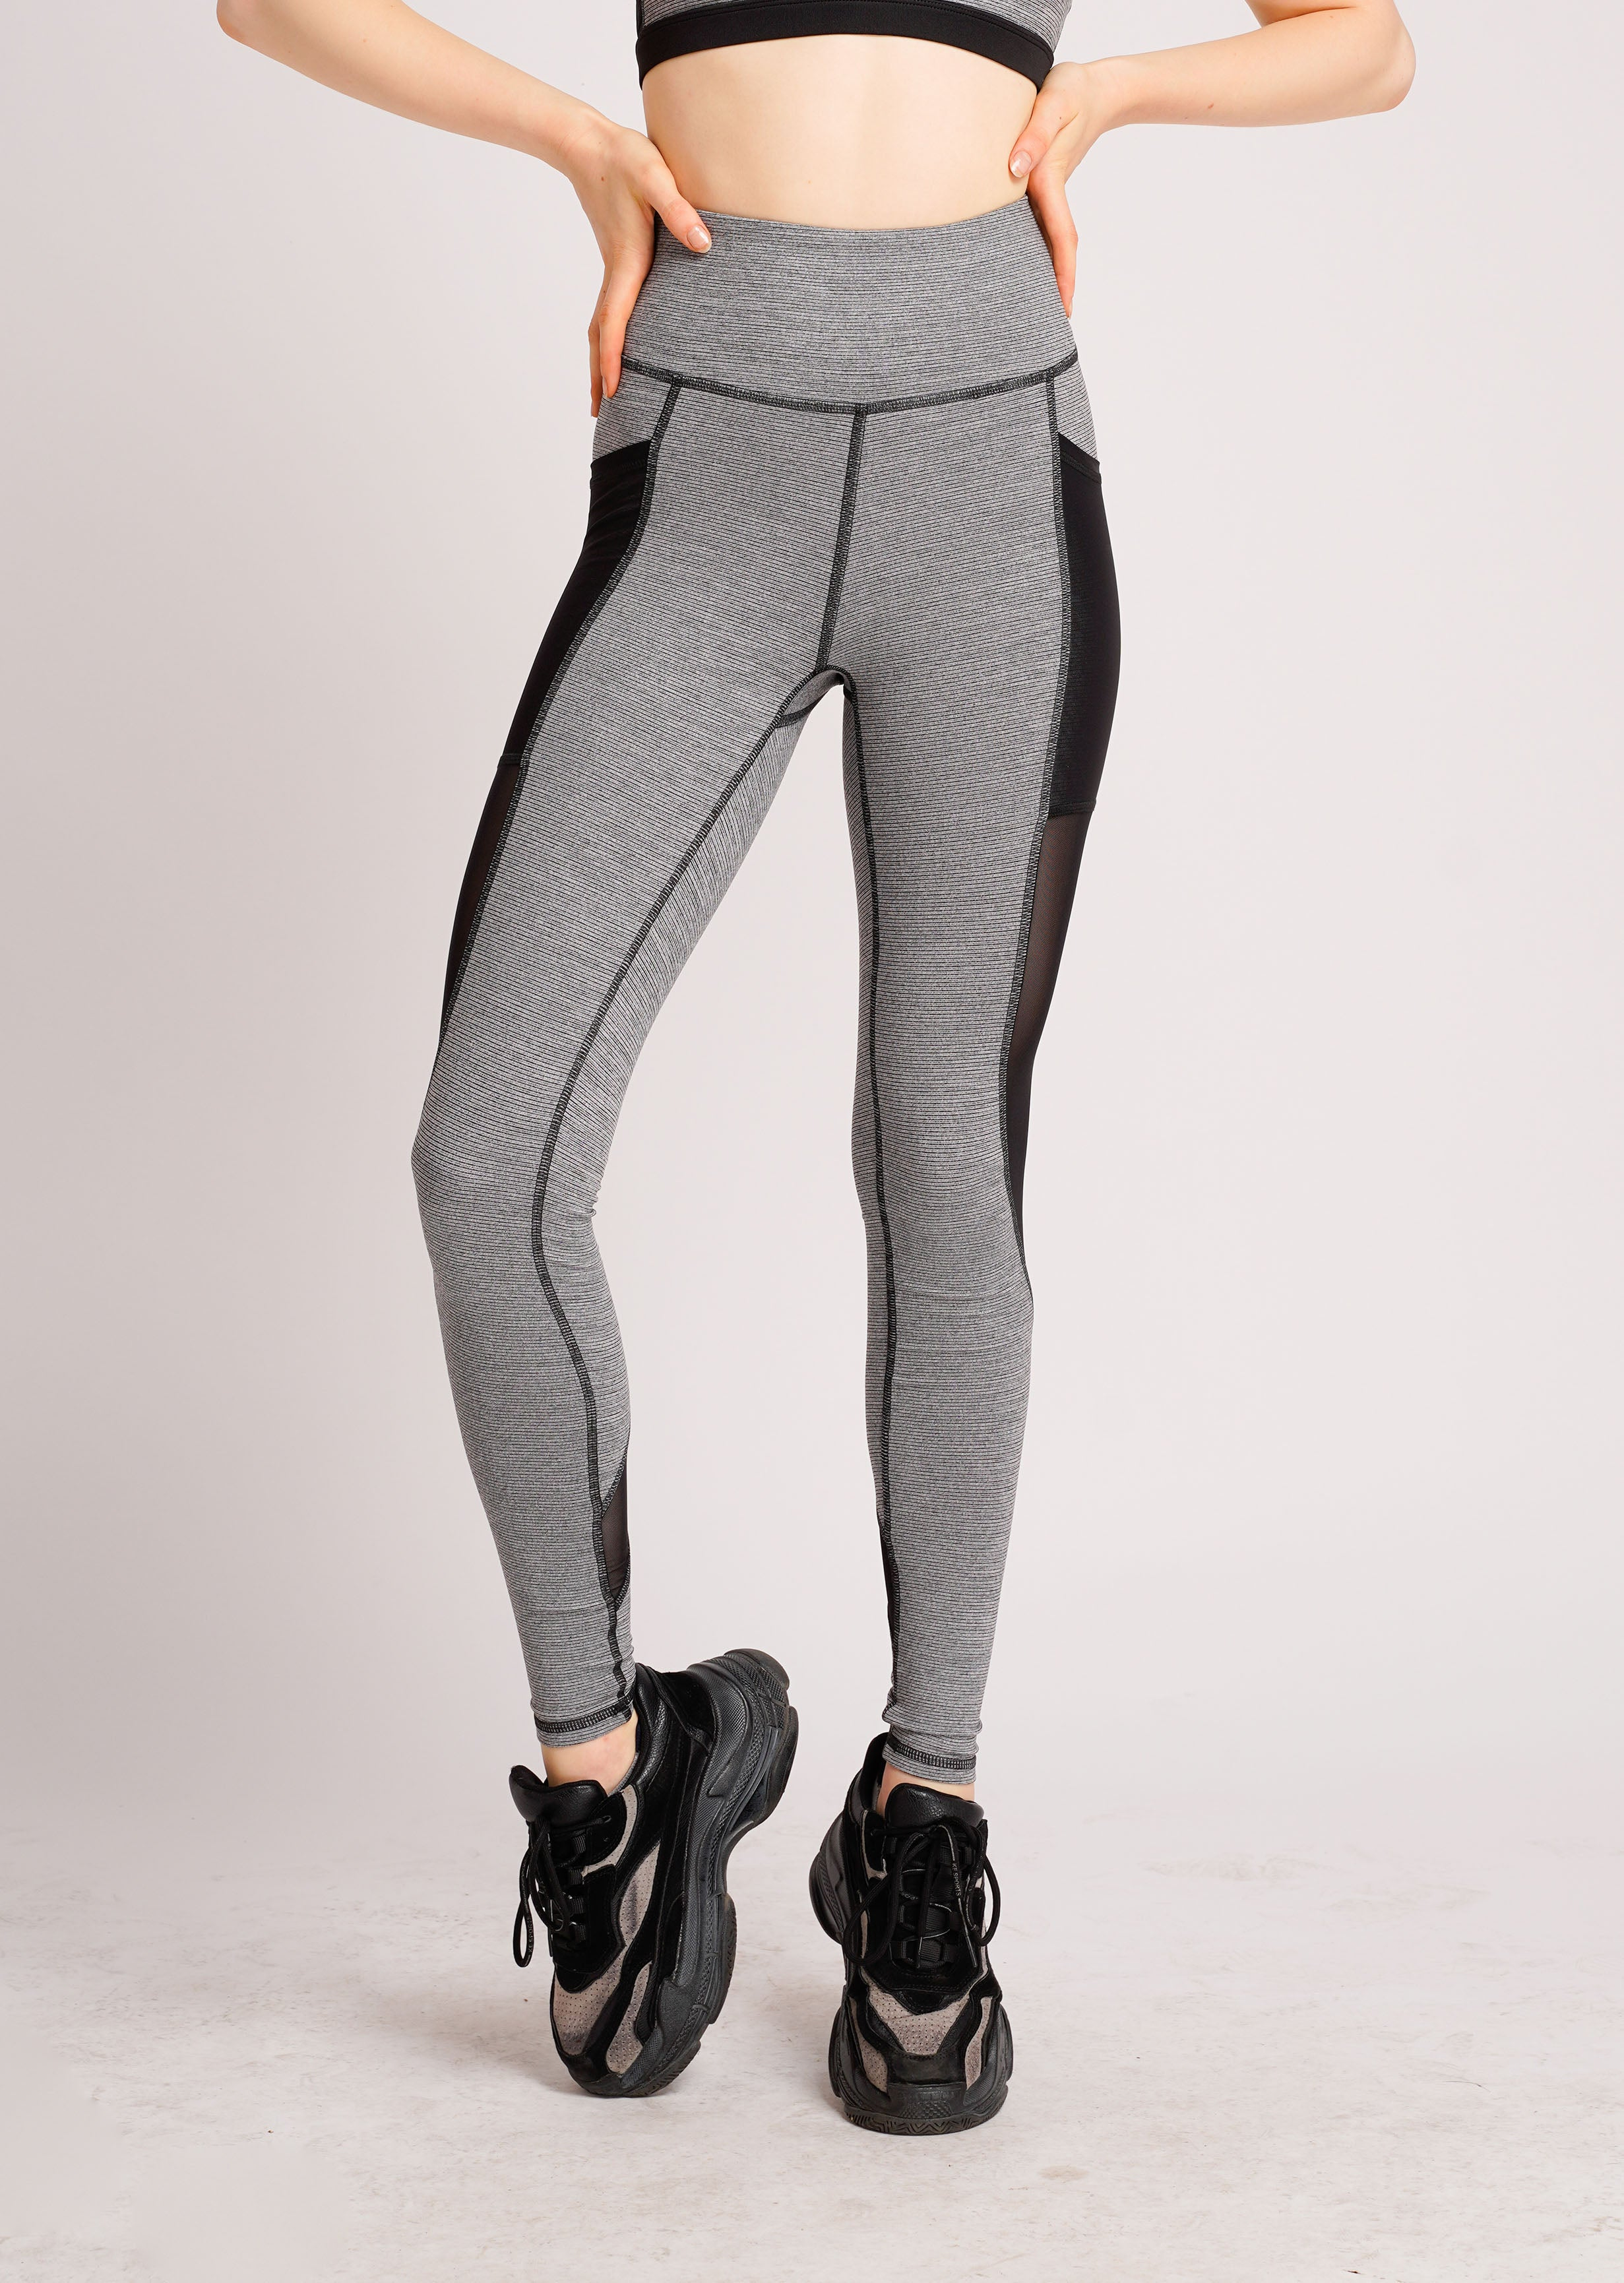 Glowy Dual Side Pocket Full Length Tights Grey Stripe